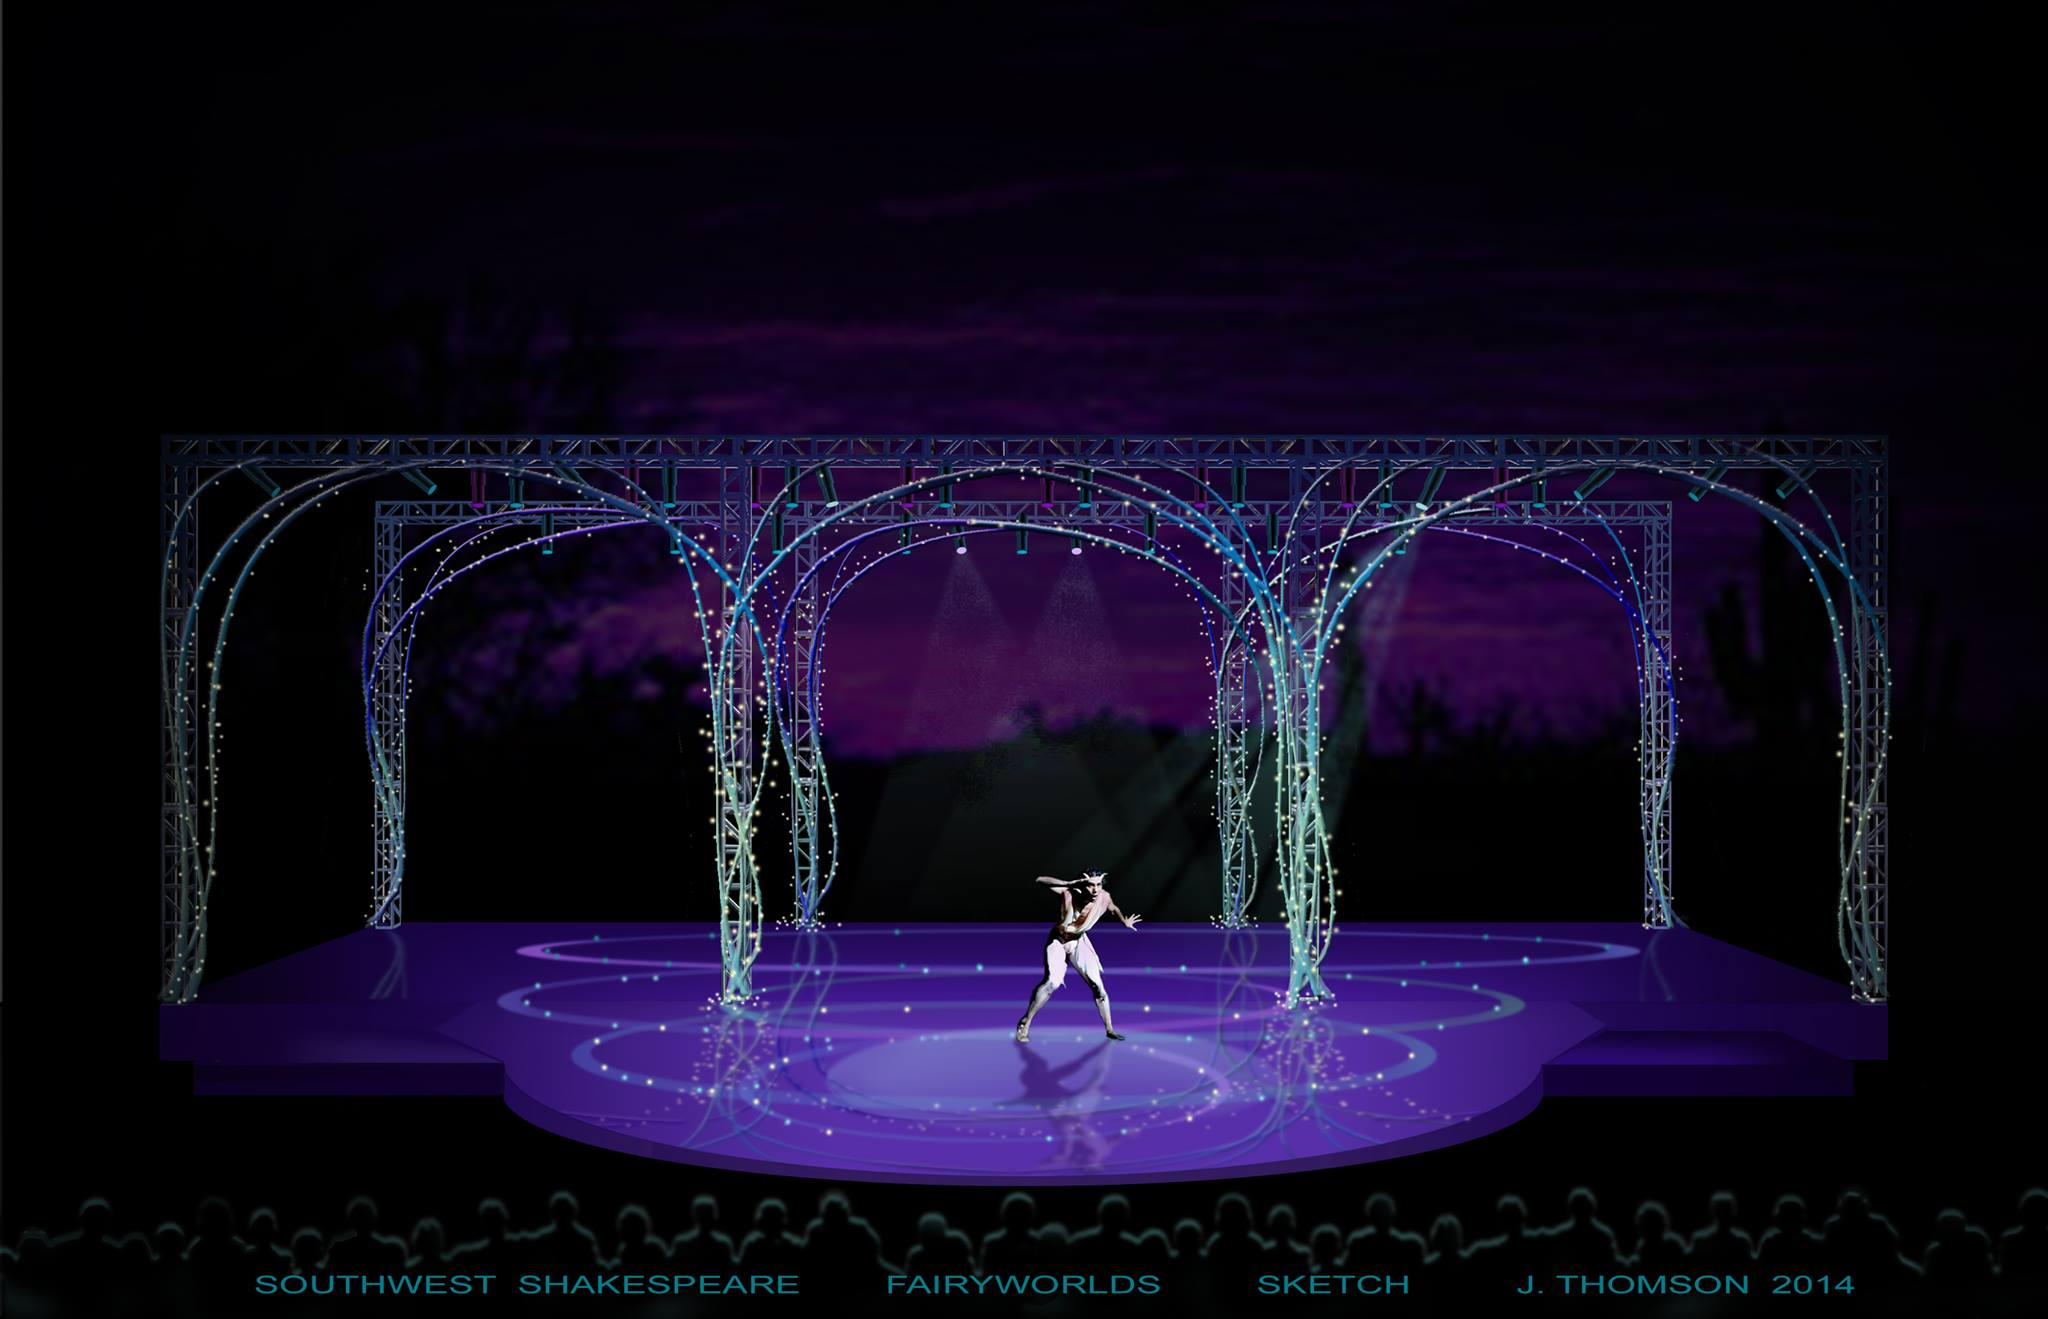 Southwest Shakespeare Company: A Midsummer Night's Dream Desert Botanical Garden May-June, 2014 Designer Jeff Thomson's sketch for the production.